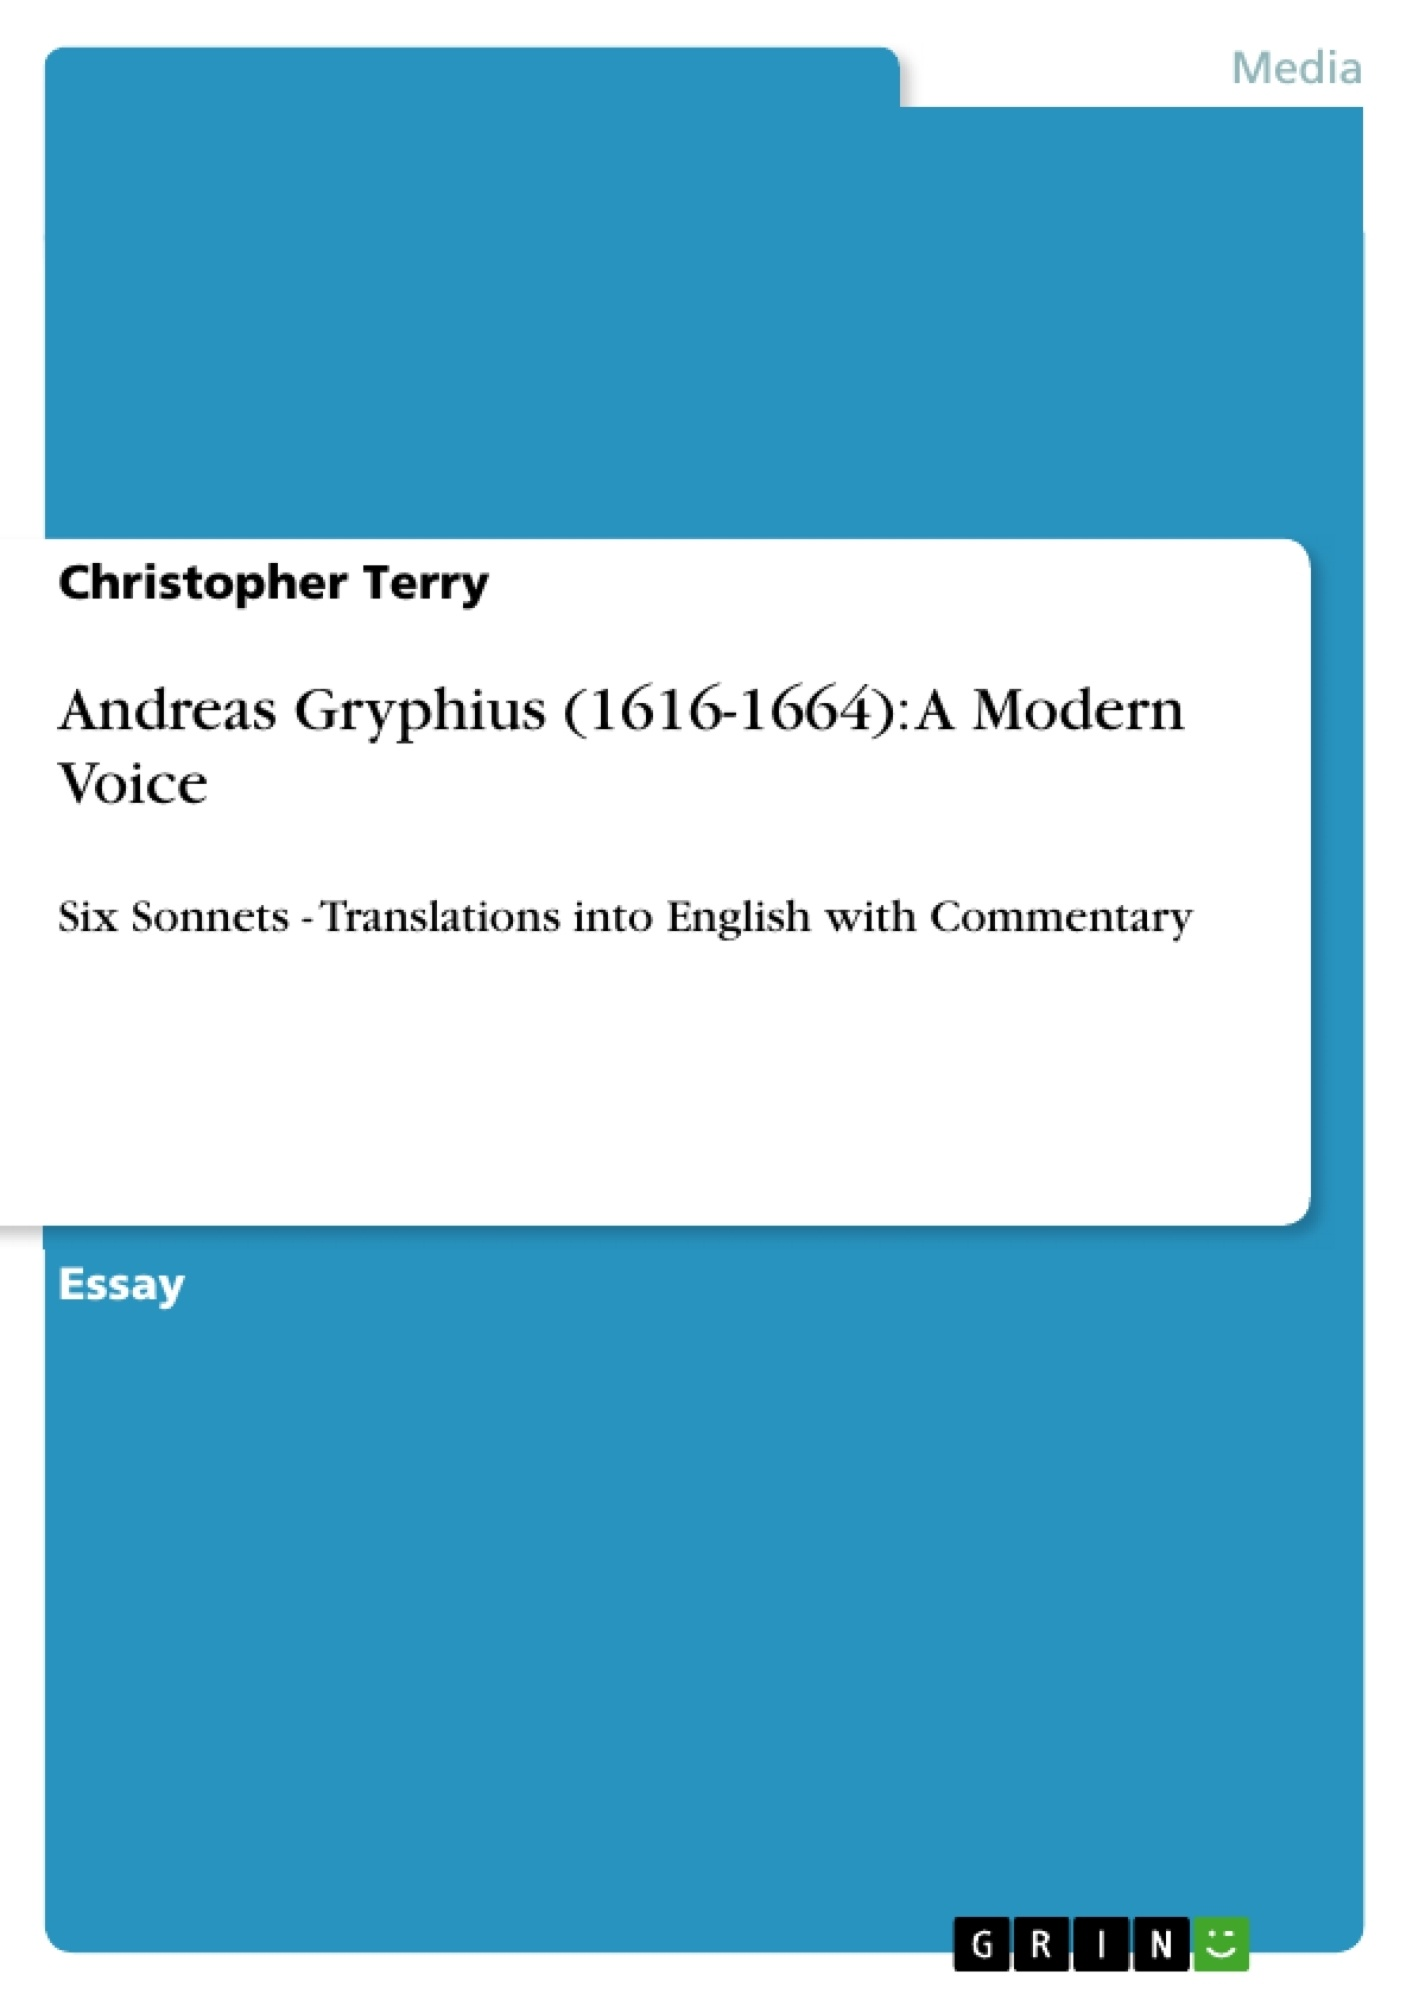 Title: Andreas Gryphius (1616-1664): A Modern Voice